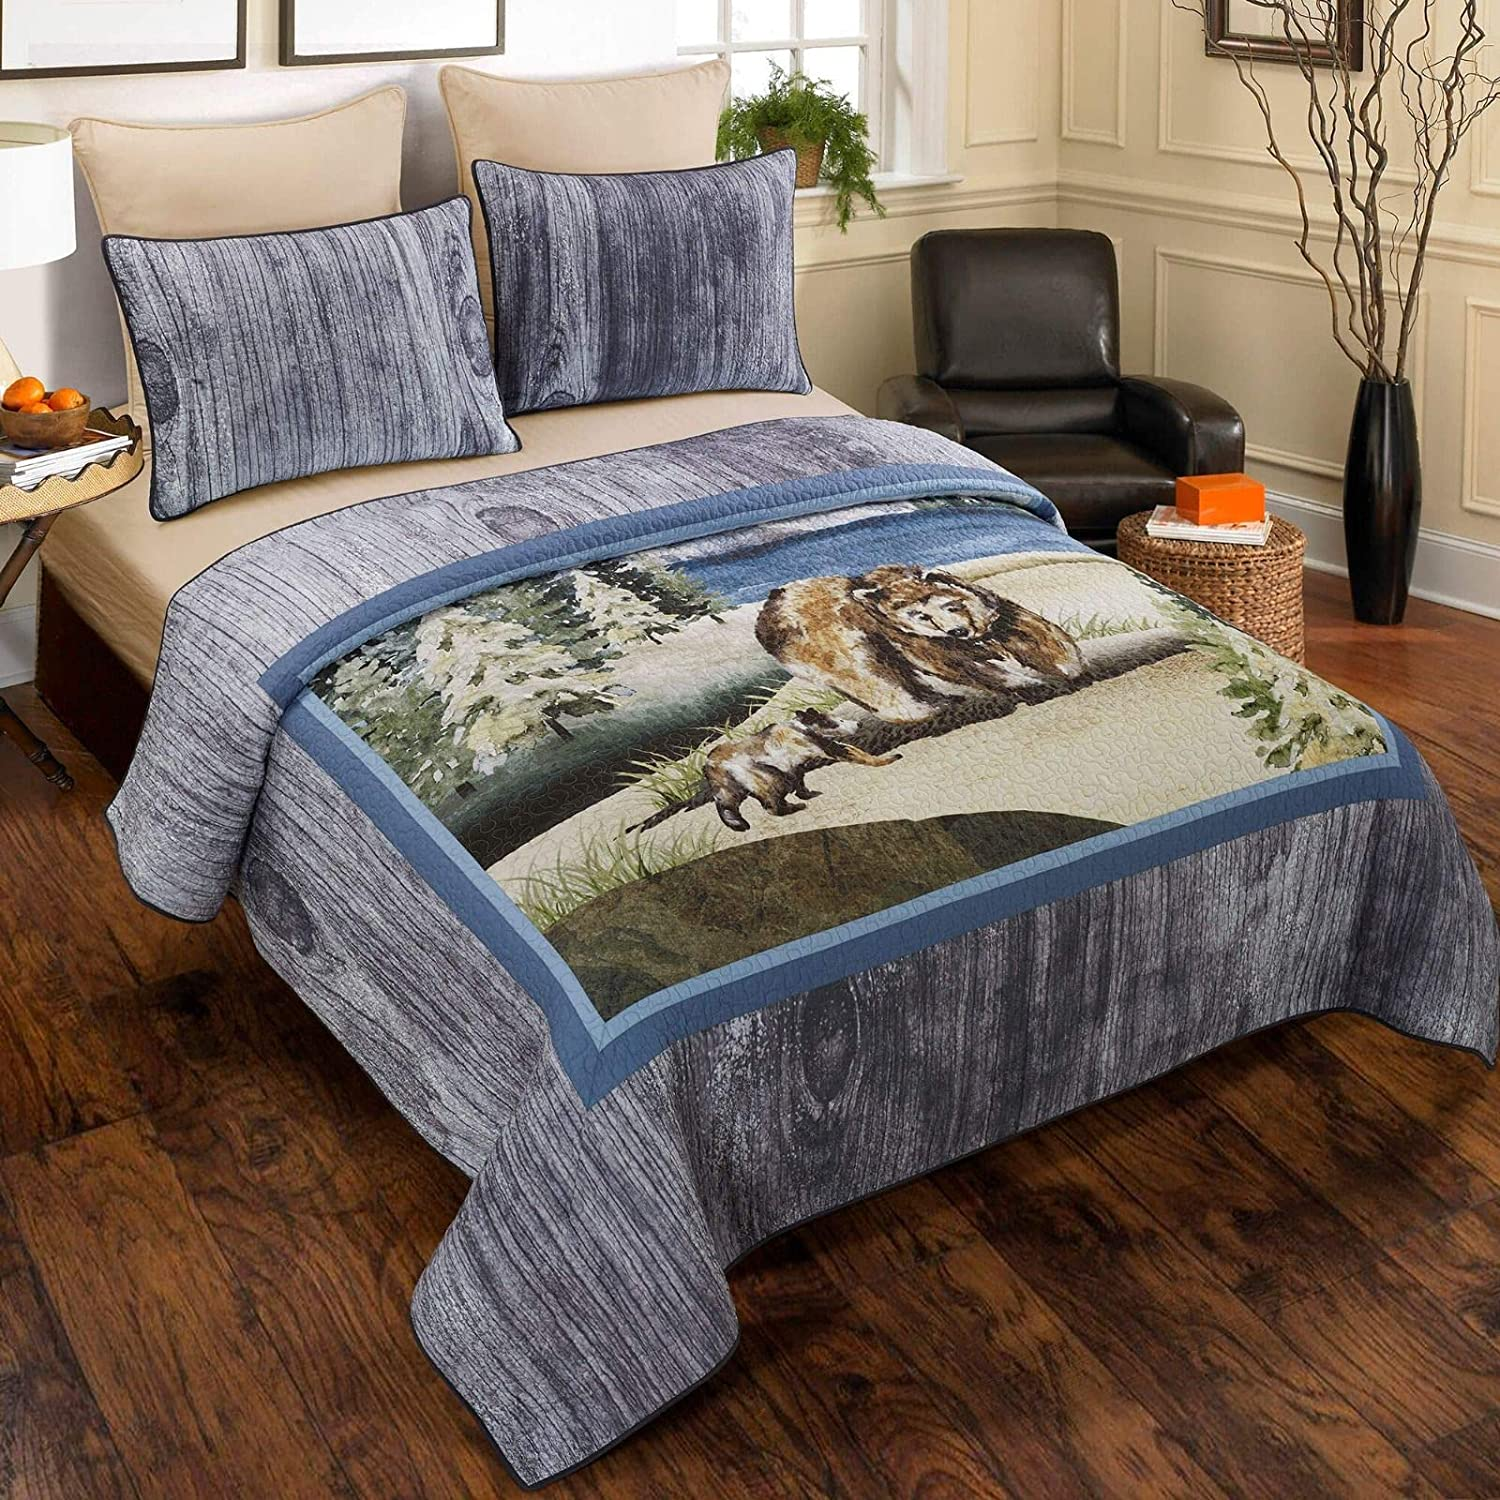 Donna Sharp King Bedding Set - 3 Piece - Montana Morning Lodge Quilt Set with King Quilt and Two King Pillow Shams - Machine Washable